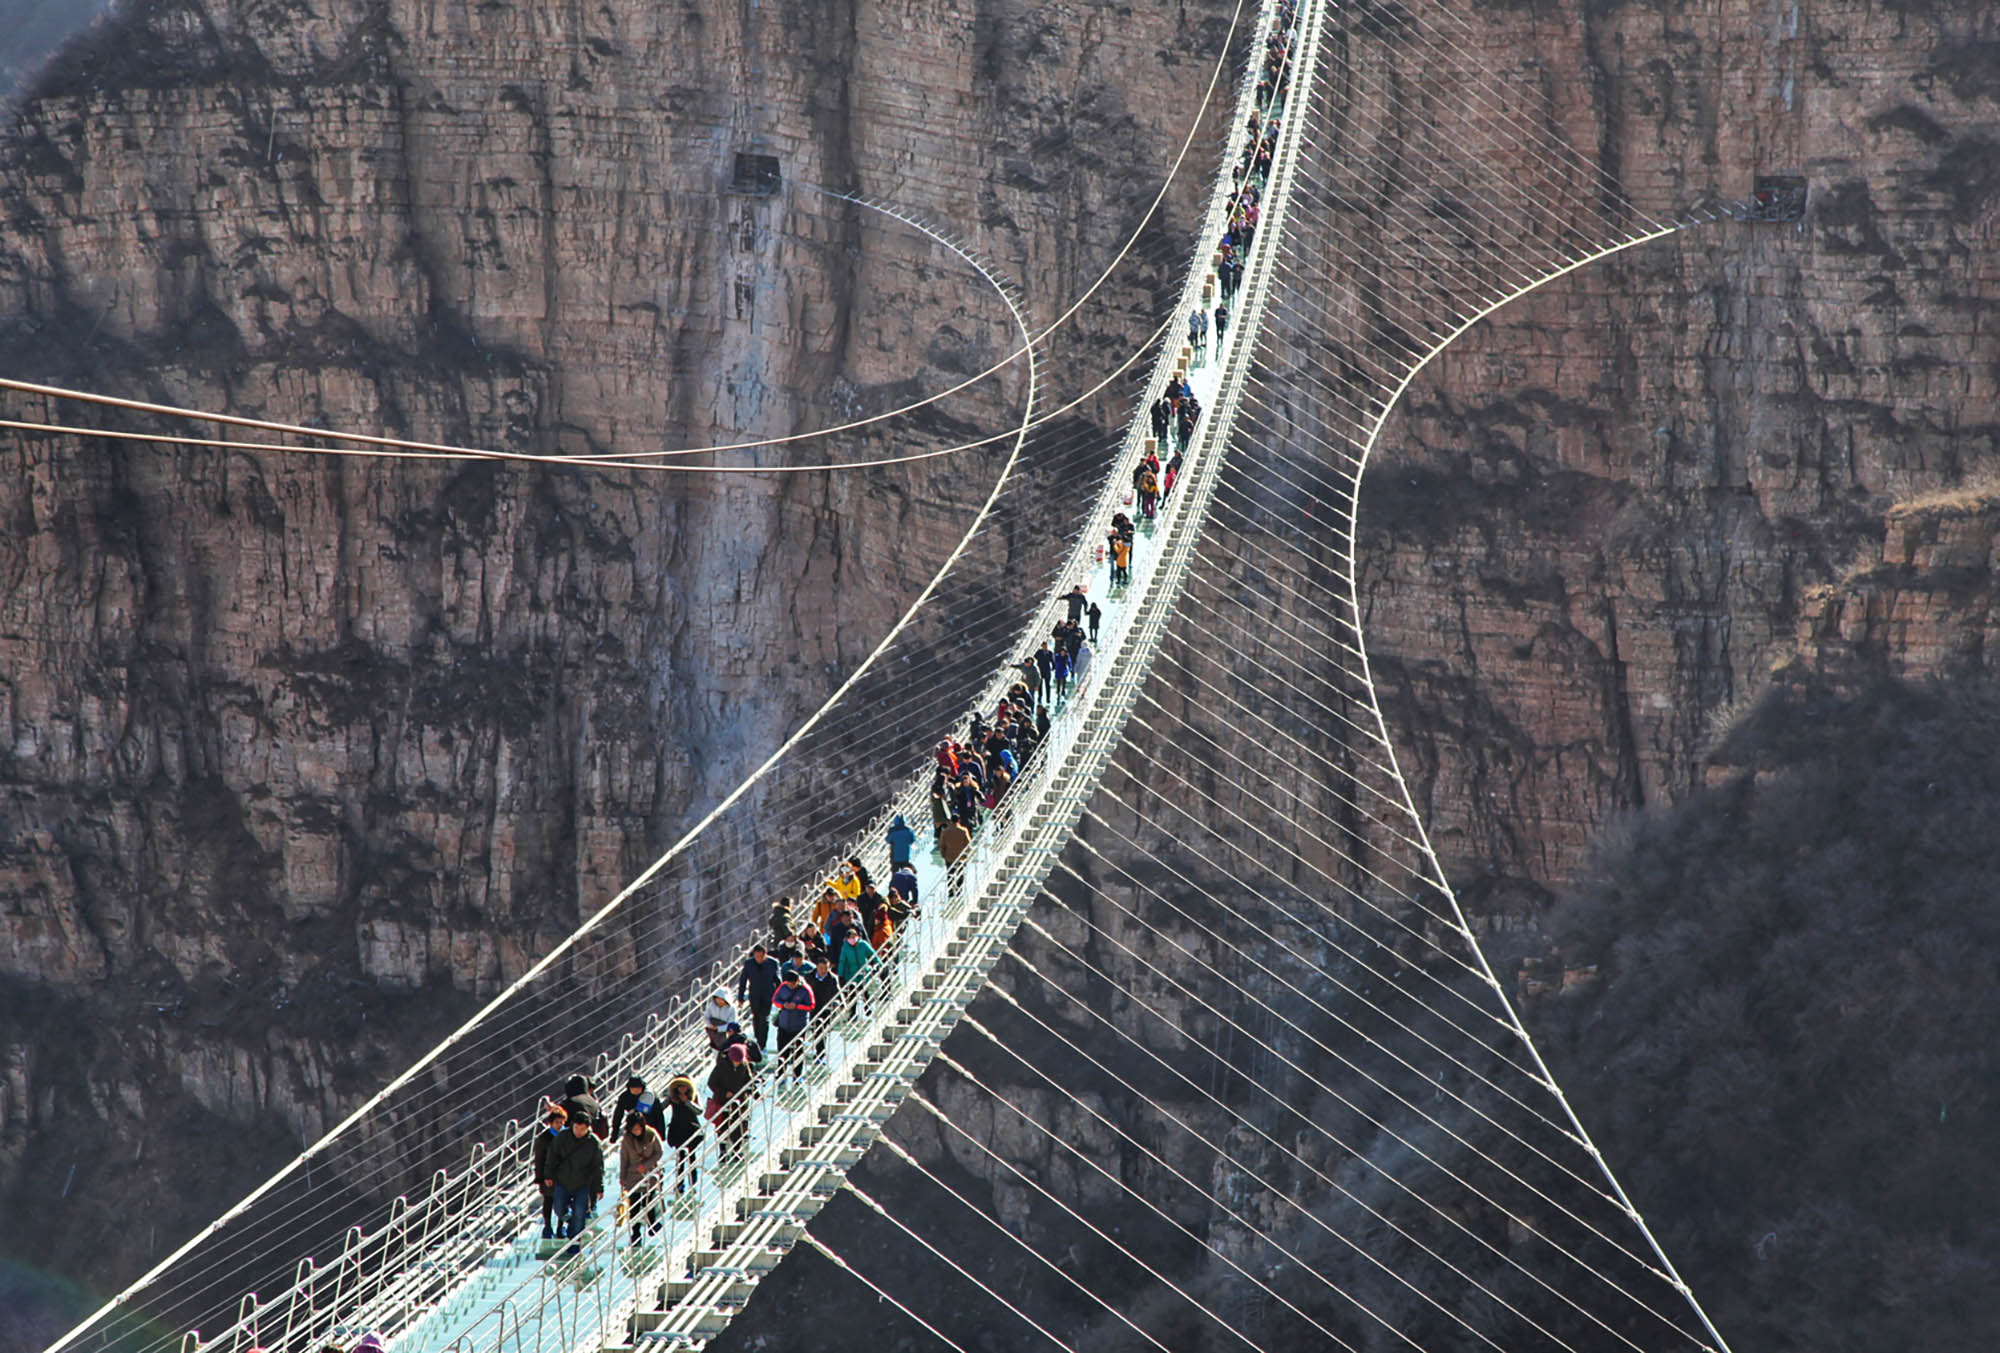 Hongyagu glass bridge, world's longest, opens in Hebei, China | CNN ...